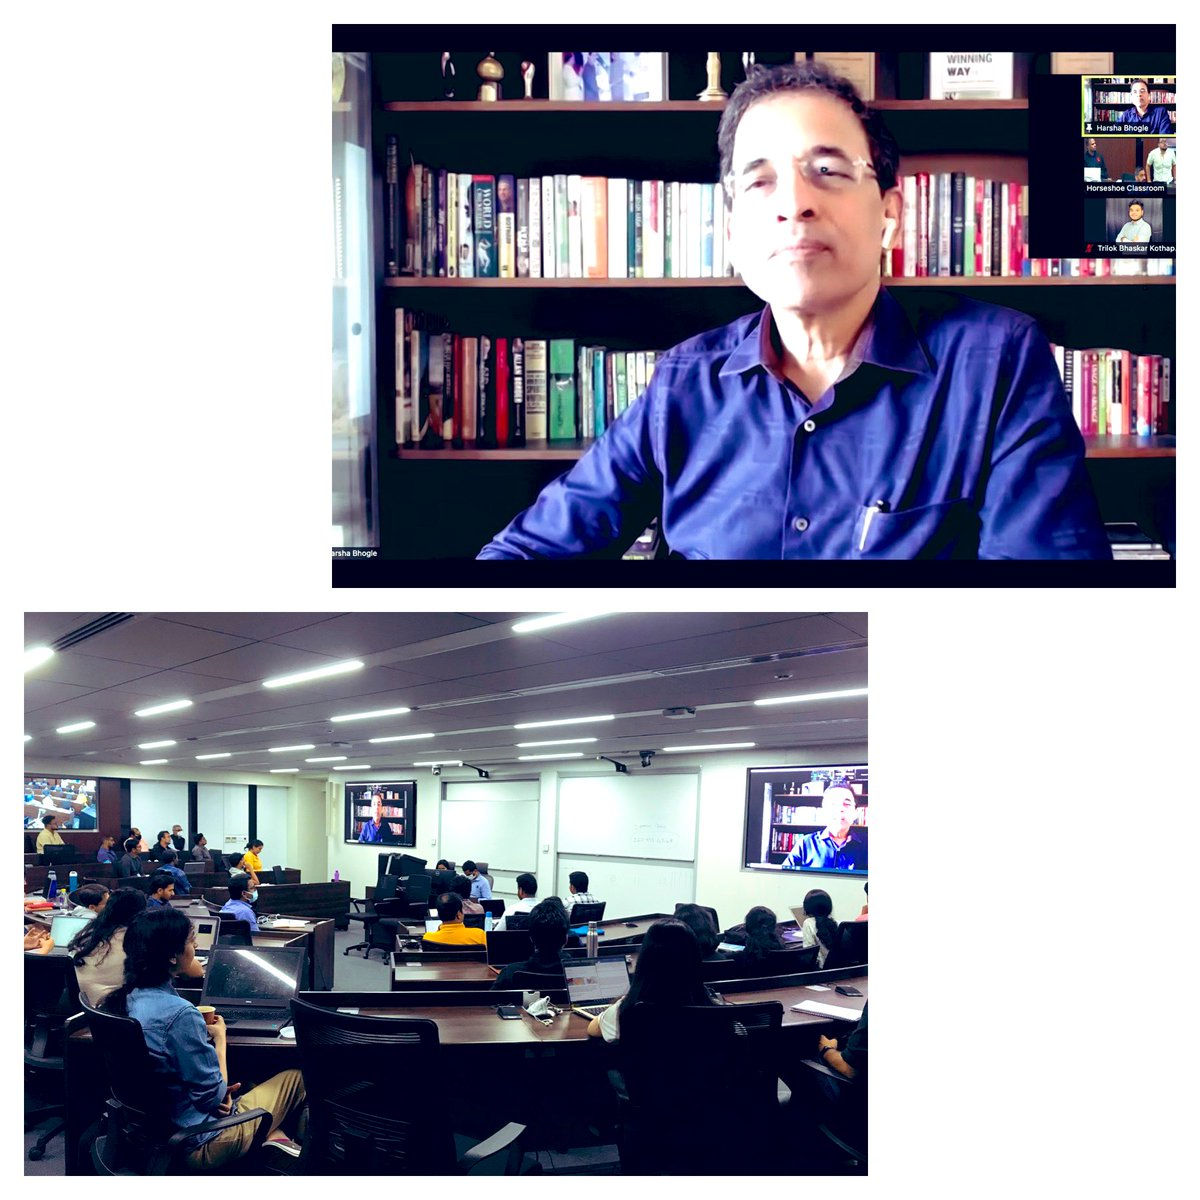 Studying Public Policy in India inevitably includes understanding cricket… Where there is cricket, there is @bhogleharsha of course…